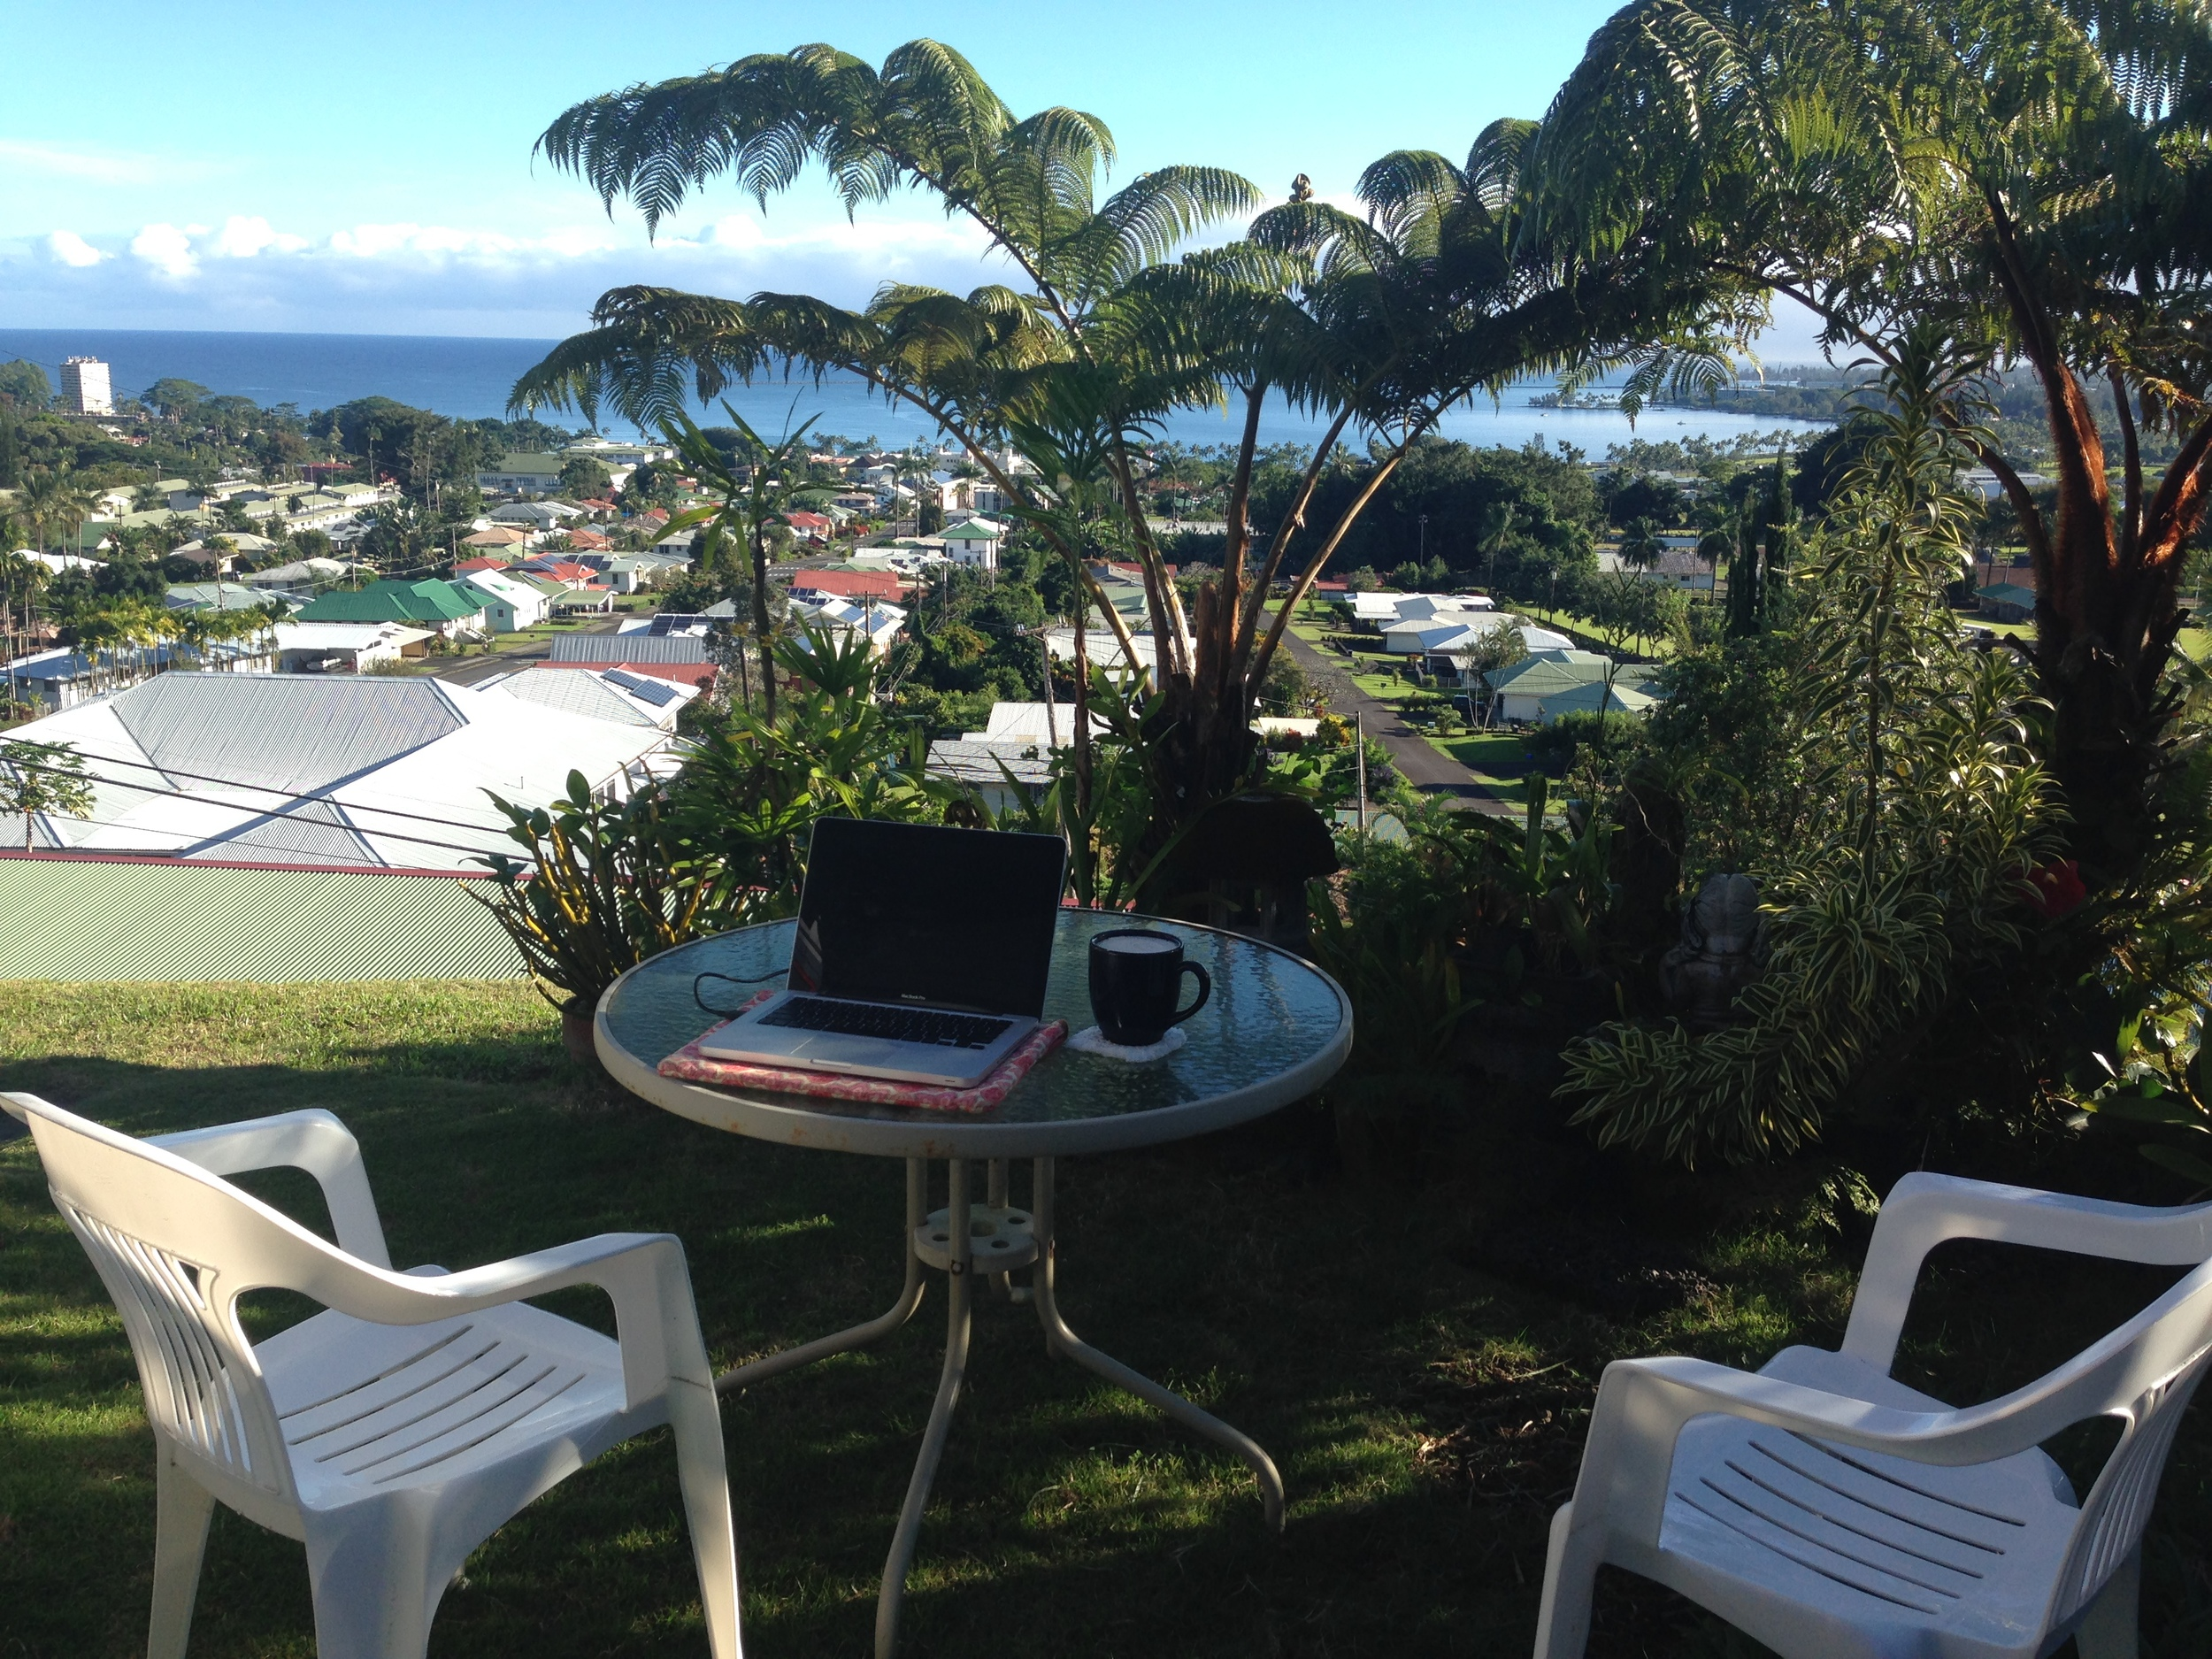 blogging station with a view